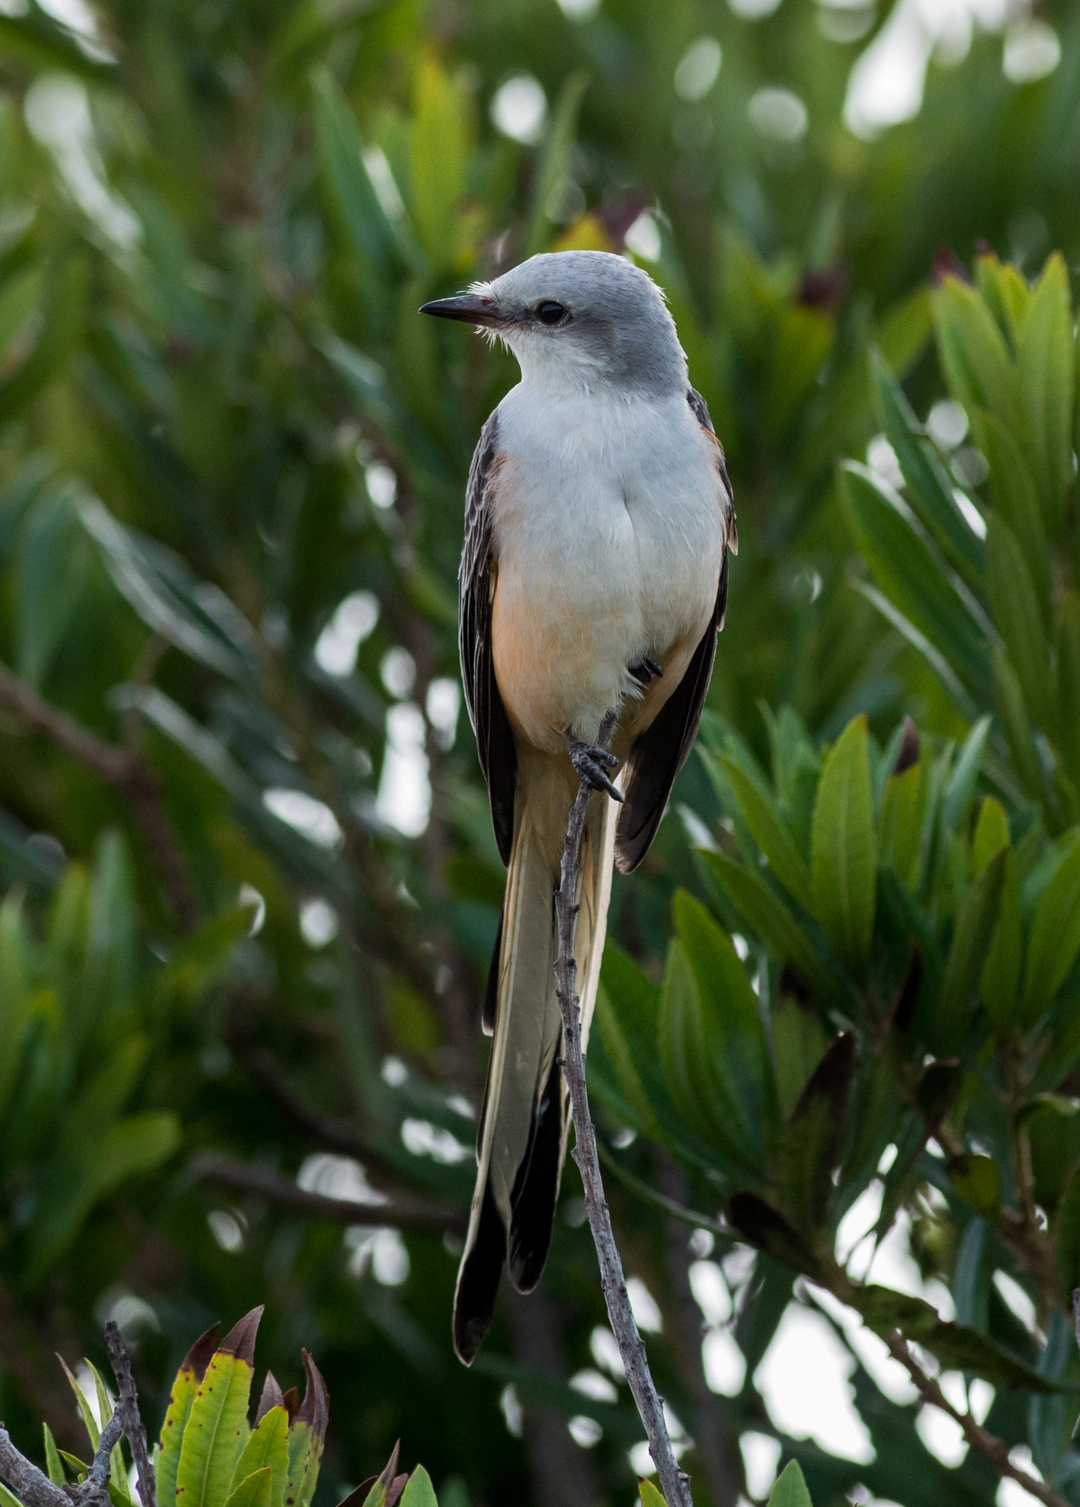 Featured Photo 16: Scissor-tailed Flycatcher (Tyrannus forficatus)  EQ: D800 f/2.8 300mm  Taken: 12-06-14 12:25  Setting: 300mm, 1/2000s, f/5.0, ISO1000  Condition: Partial Clouds, storm ending